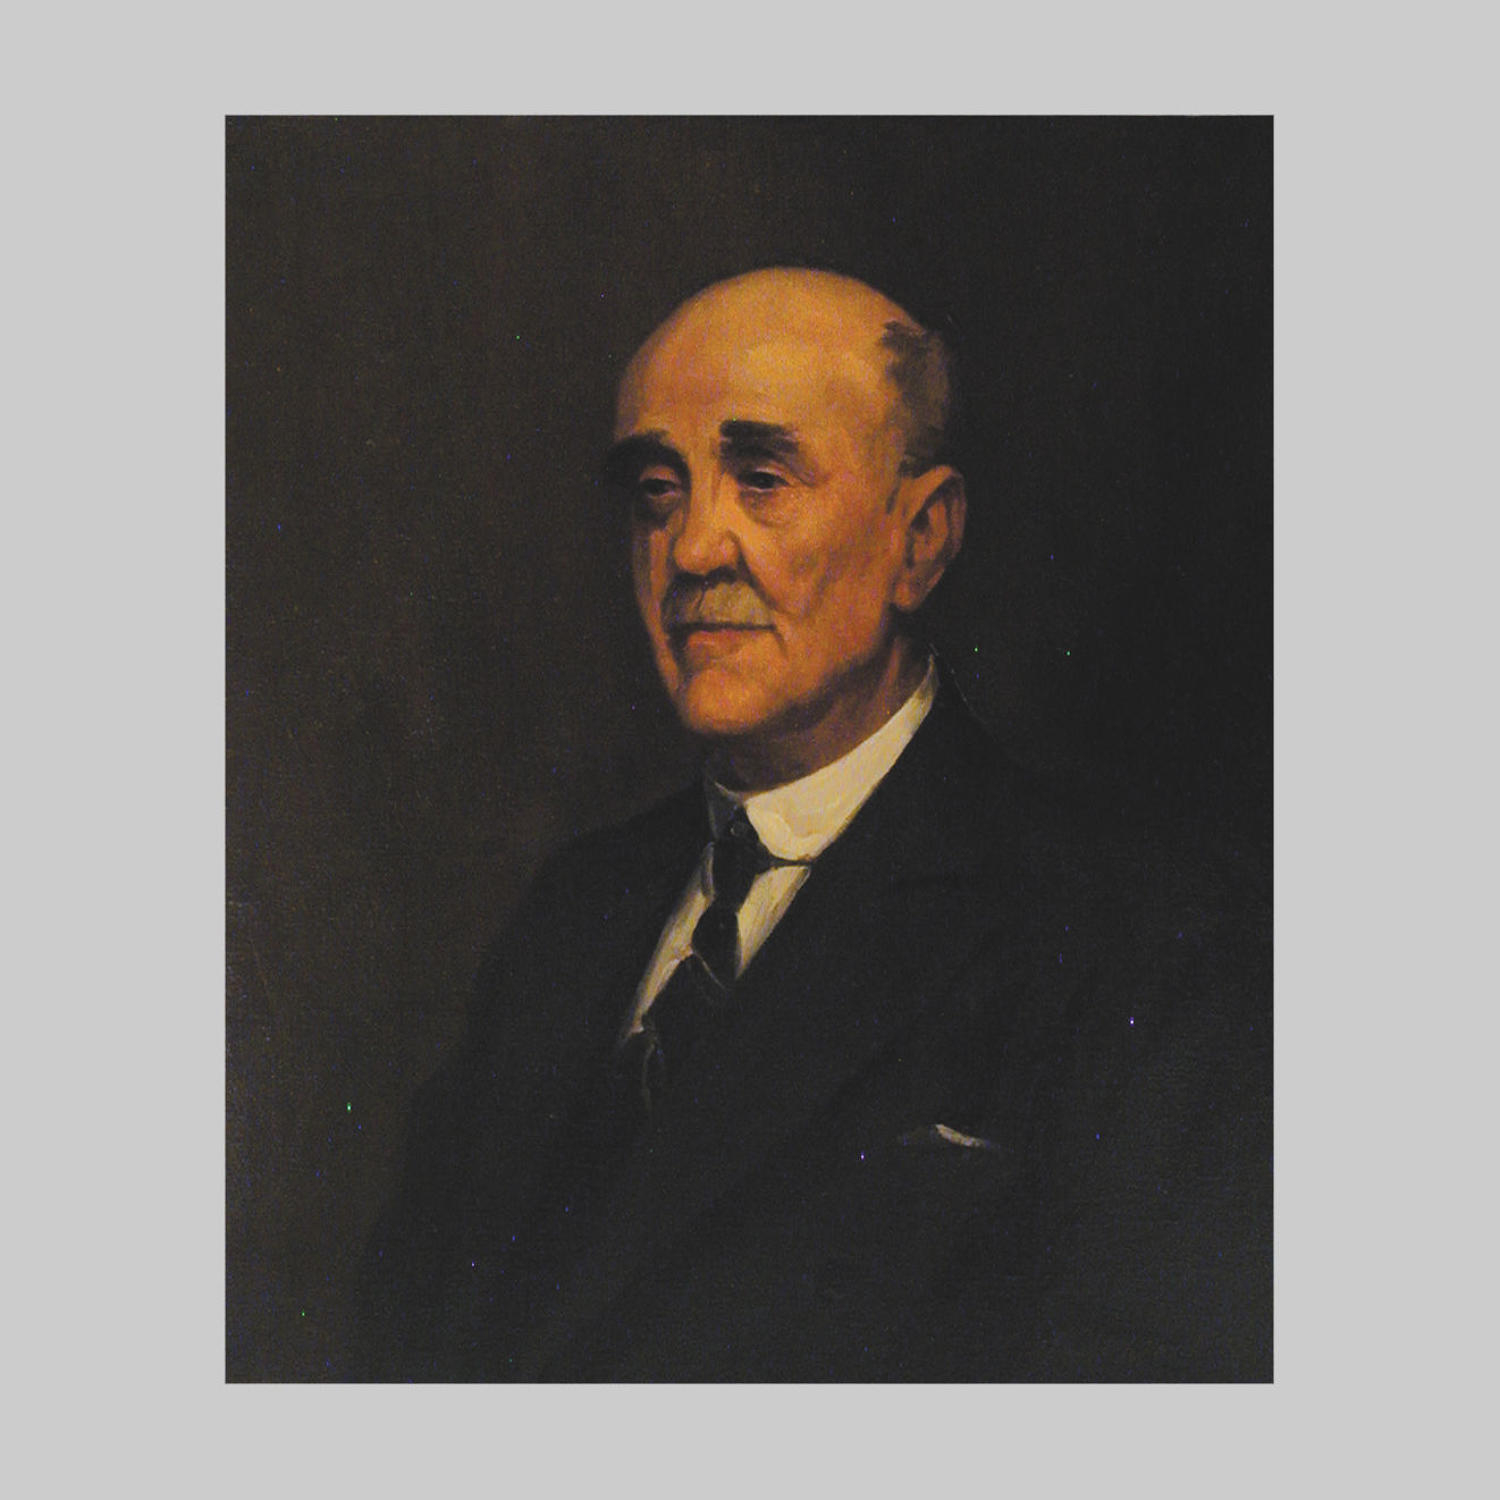 Studio portrait, oil painting, Sir James Sexton MP by T.Alfred West